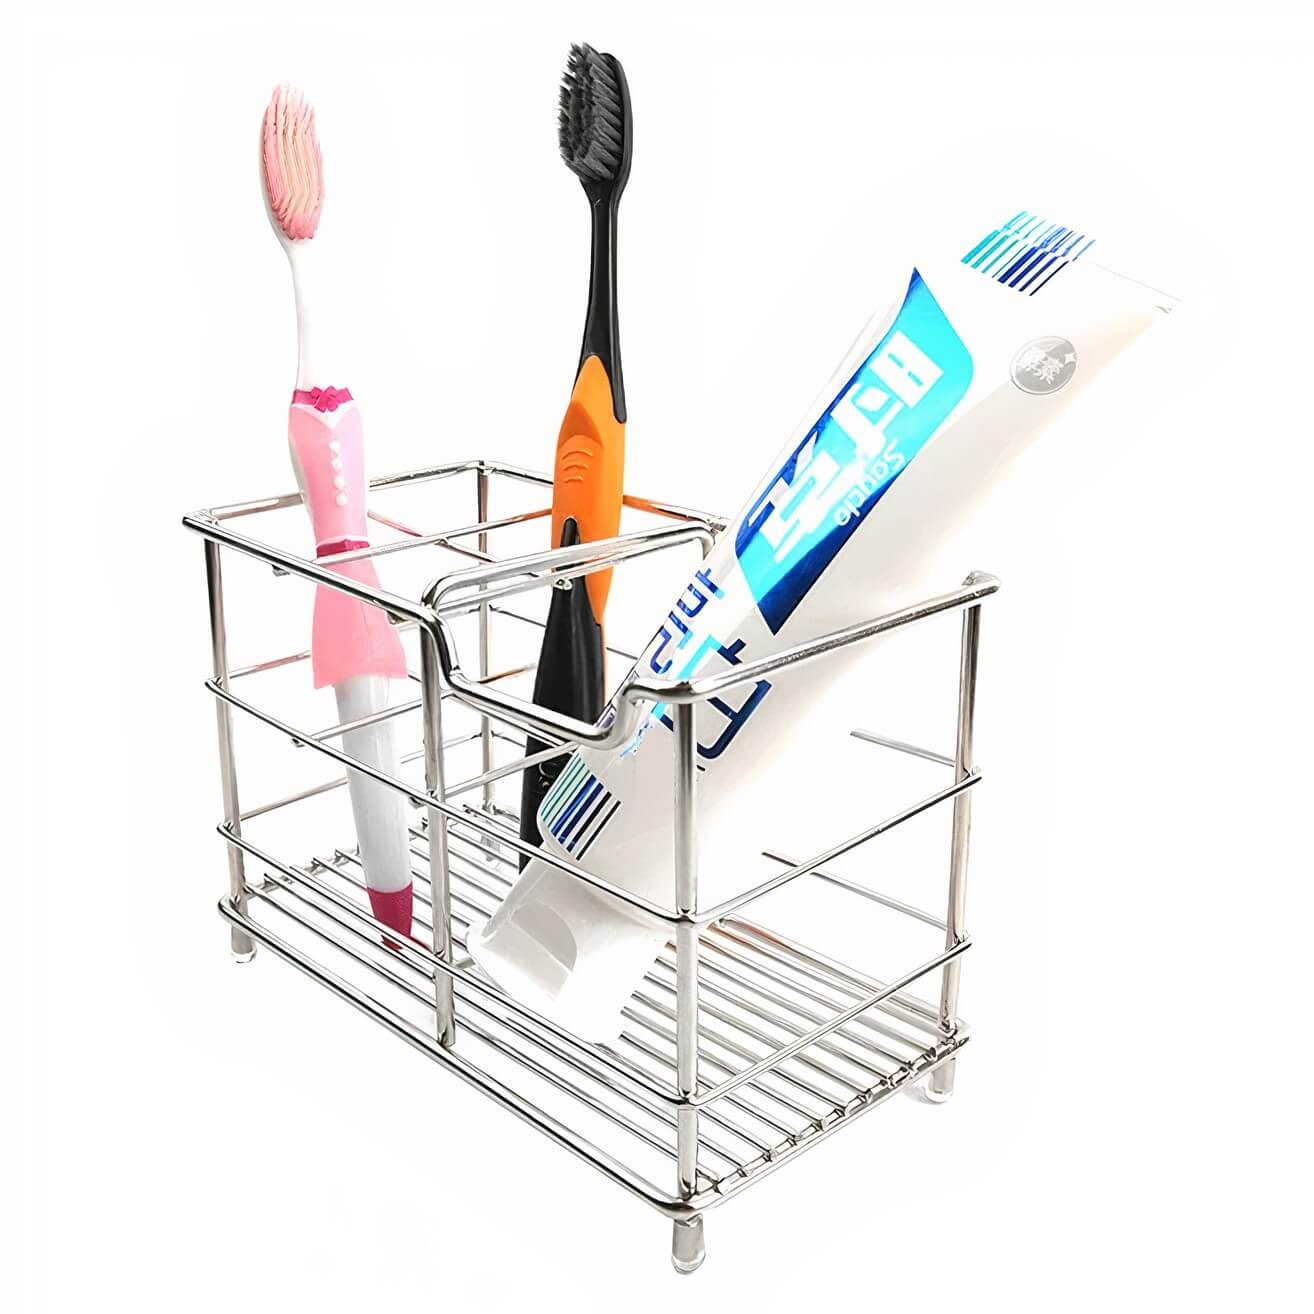 5 Slots Toothbrush Holder